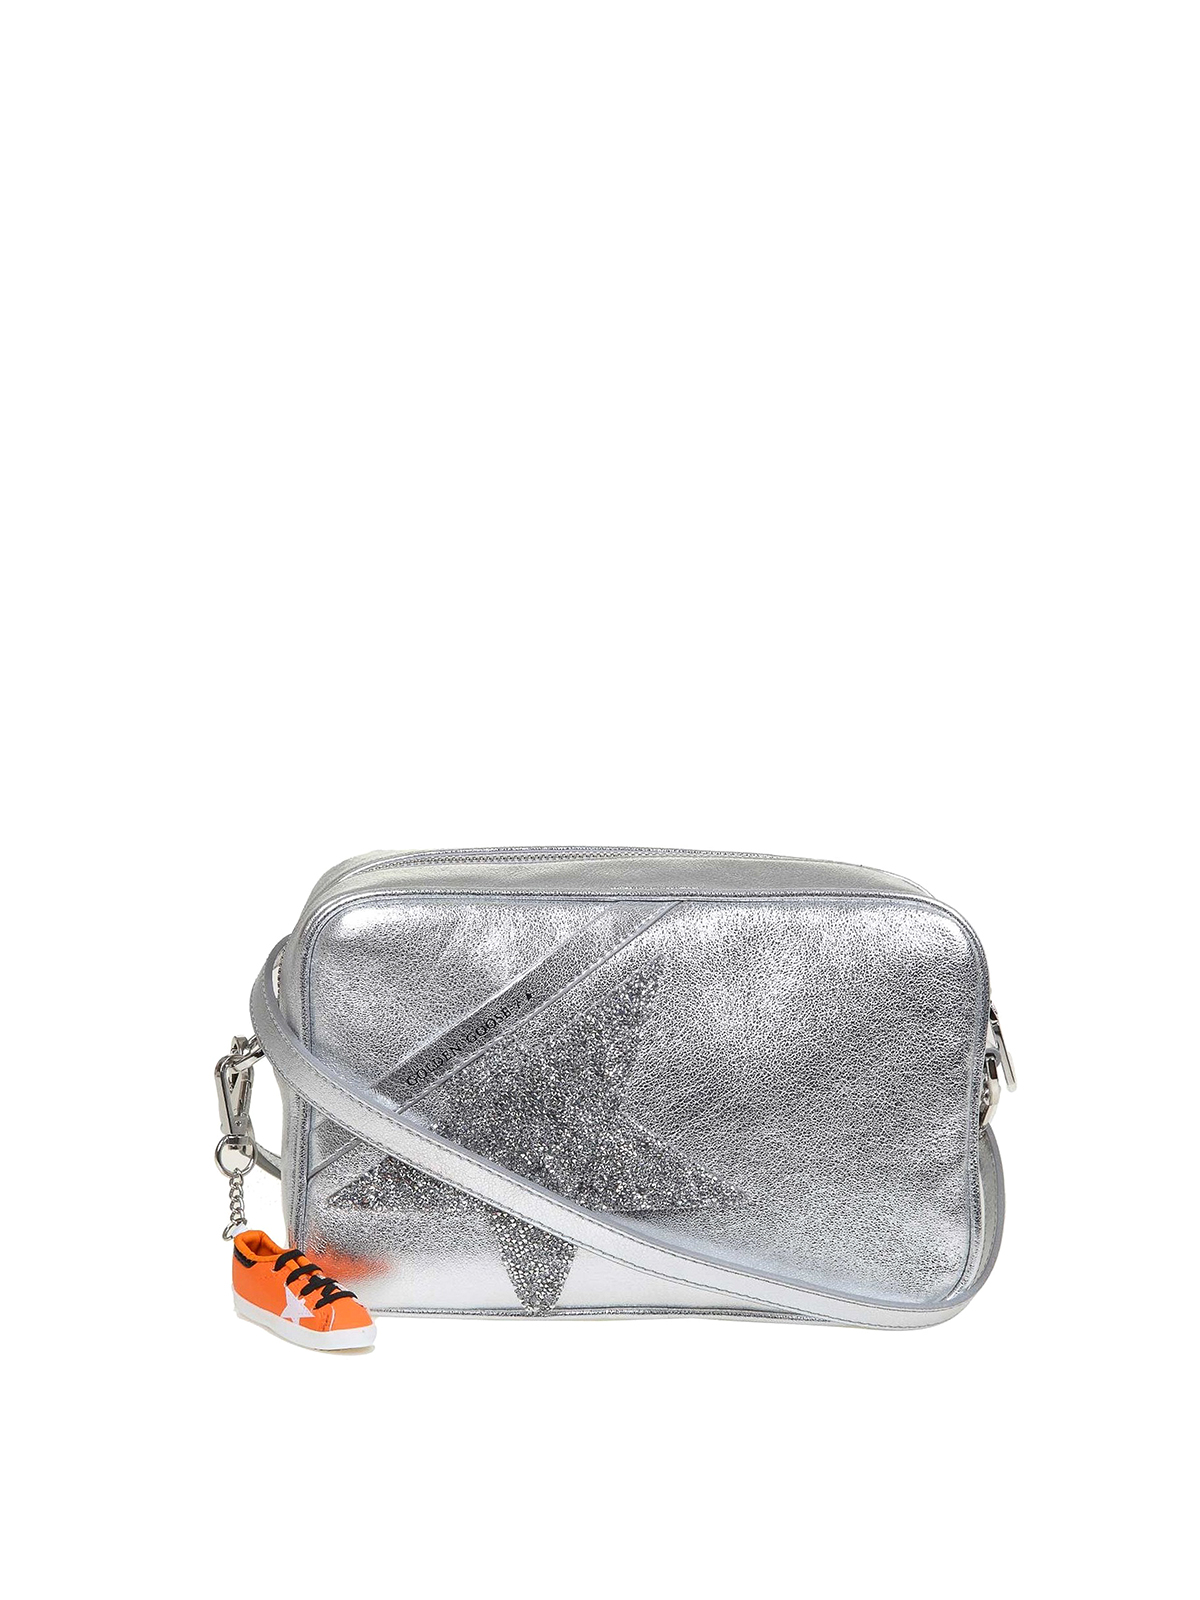 GOLDEN GOOSE STAR BAG CROSSBODY